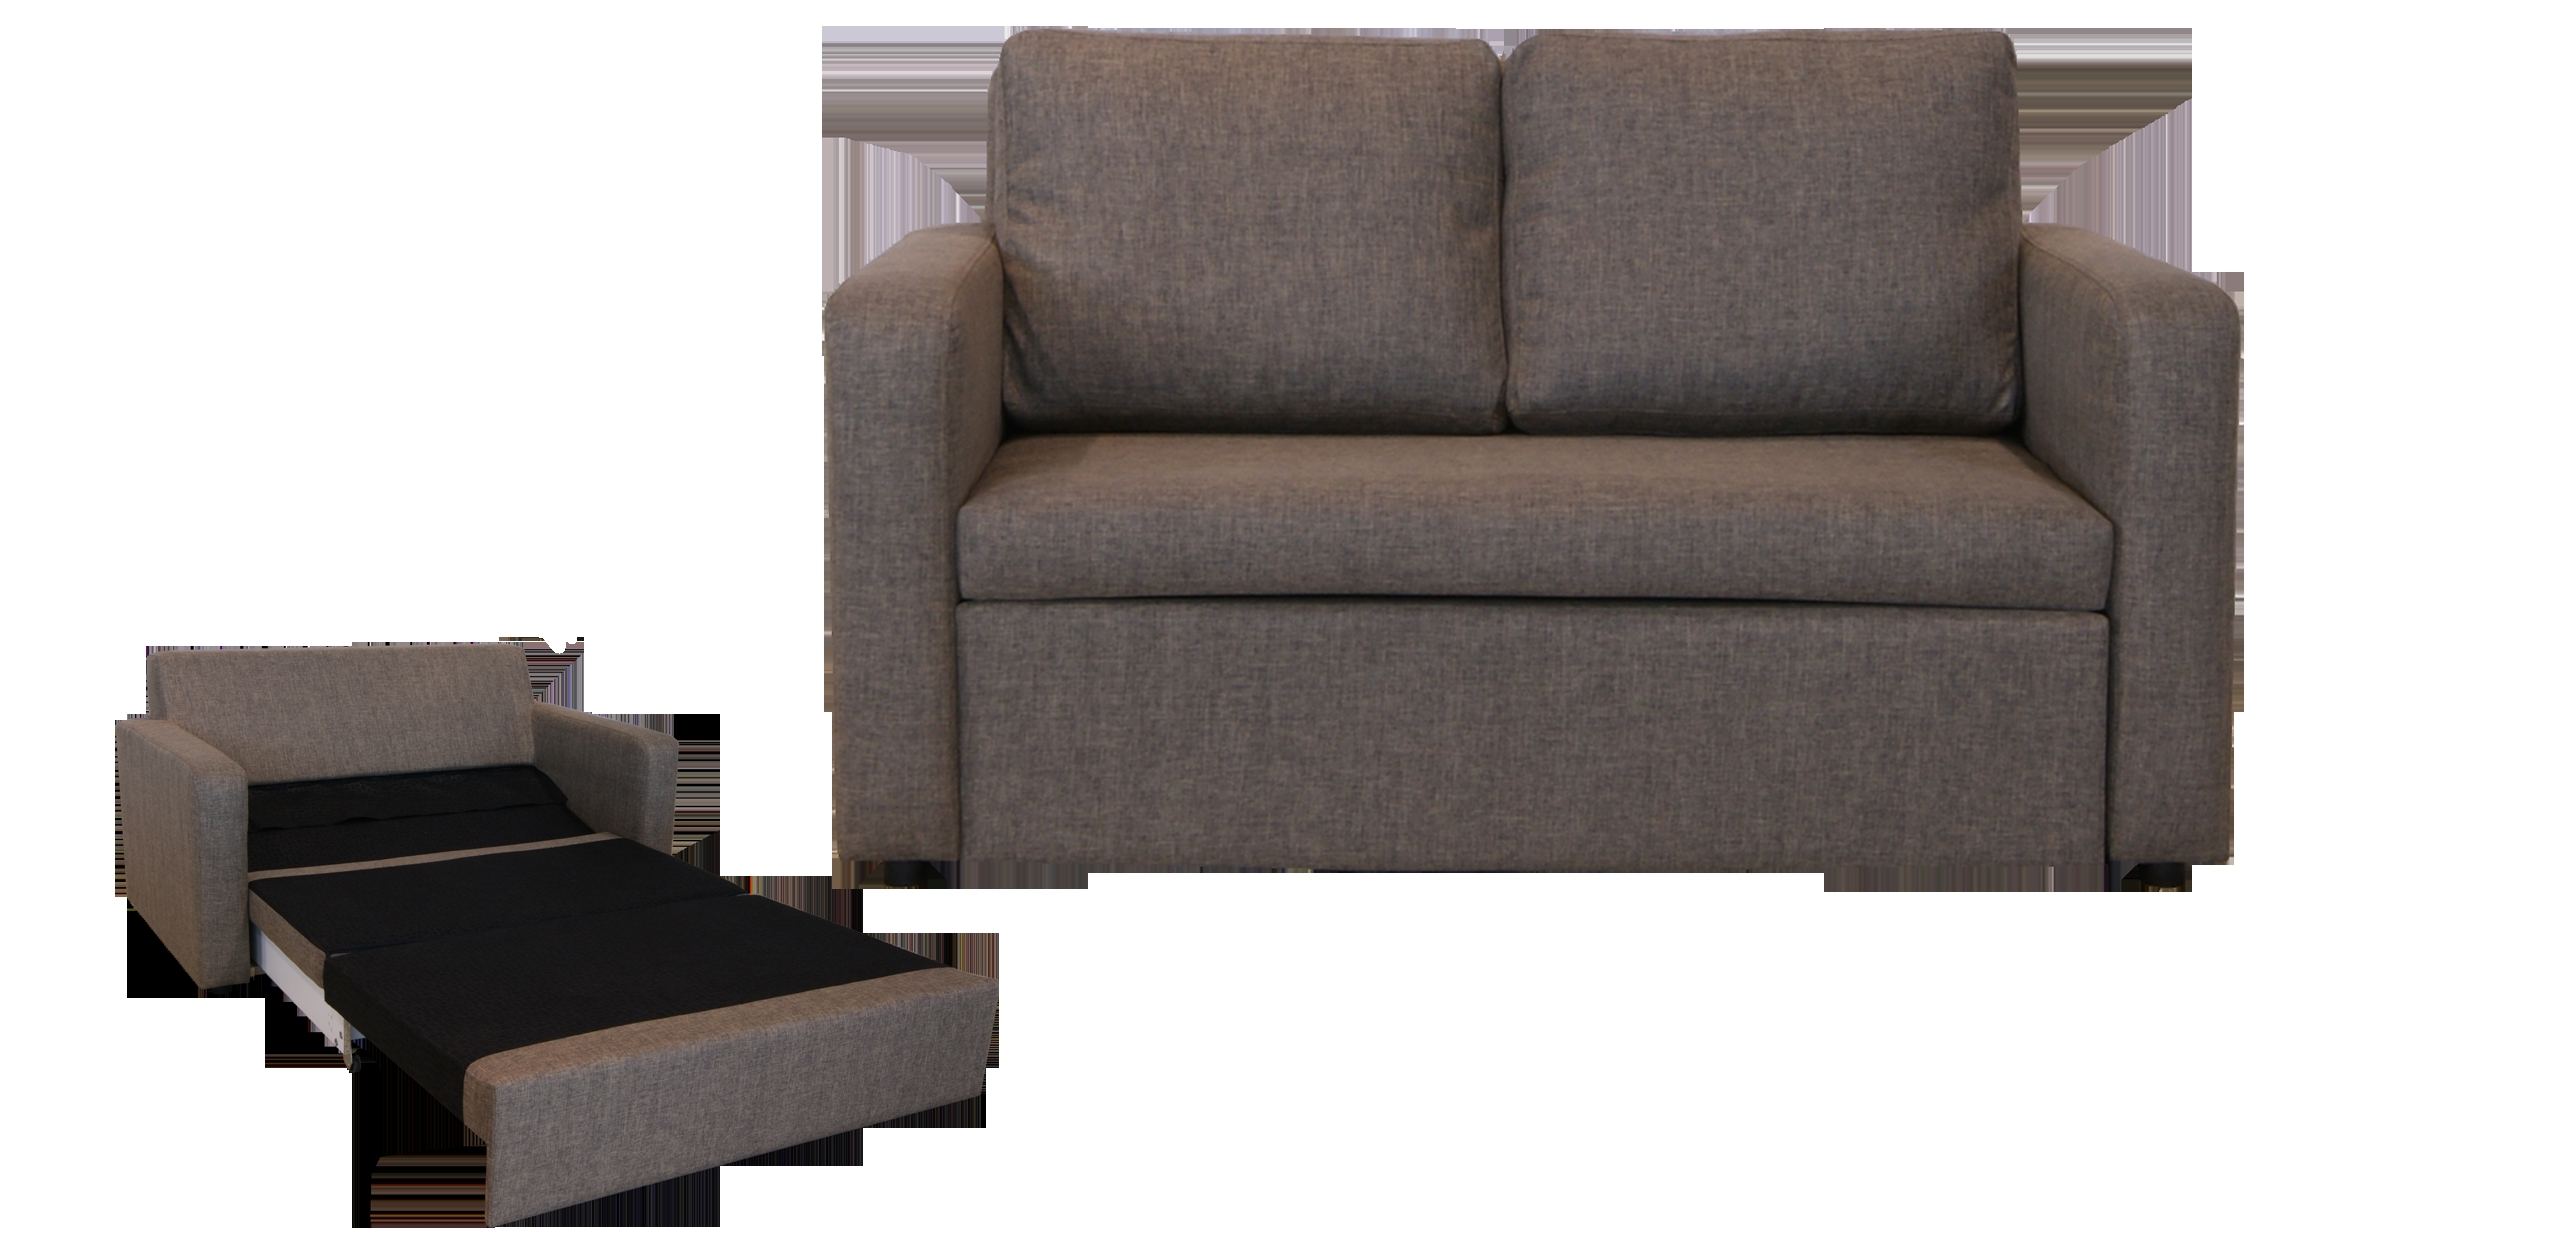 Small 2 Seater Bedroom Sofa • Sofa Bed Regarding Newest Small 2 Seater Sofas (View 8 of 15)